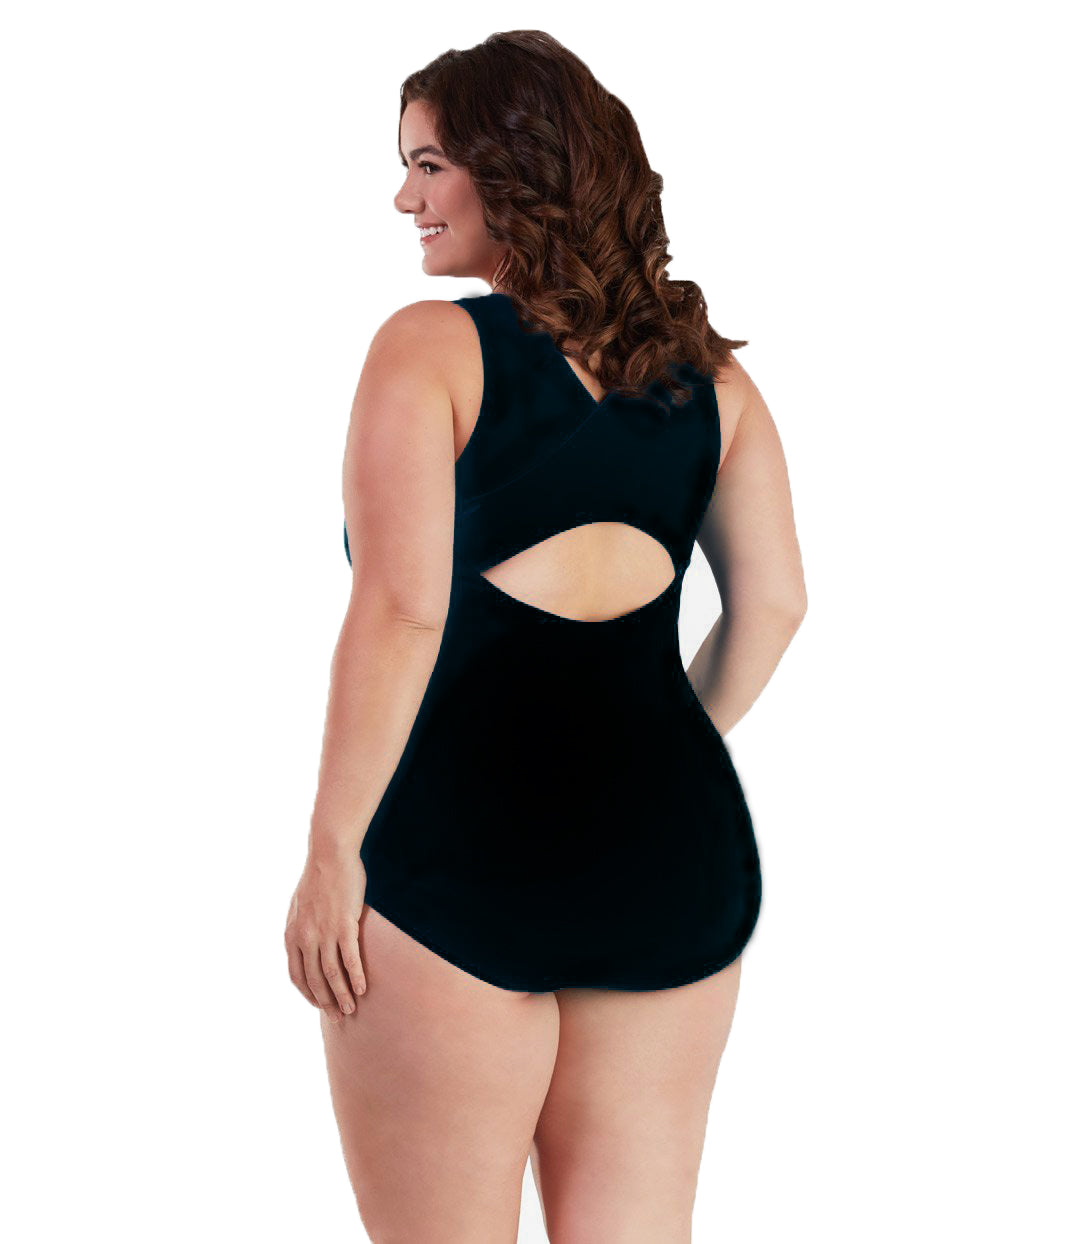 AquaSport™ One Piece Suit Black-Plus Size Swimwear and Swim Separates-SFO Apparel-XL-BLACK-JunoActive